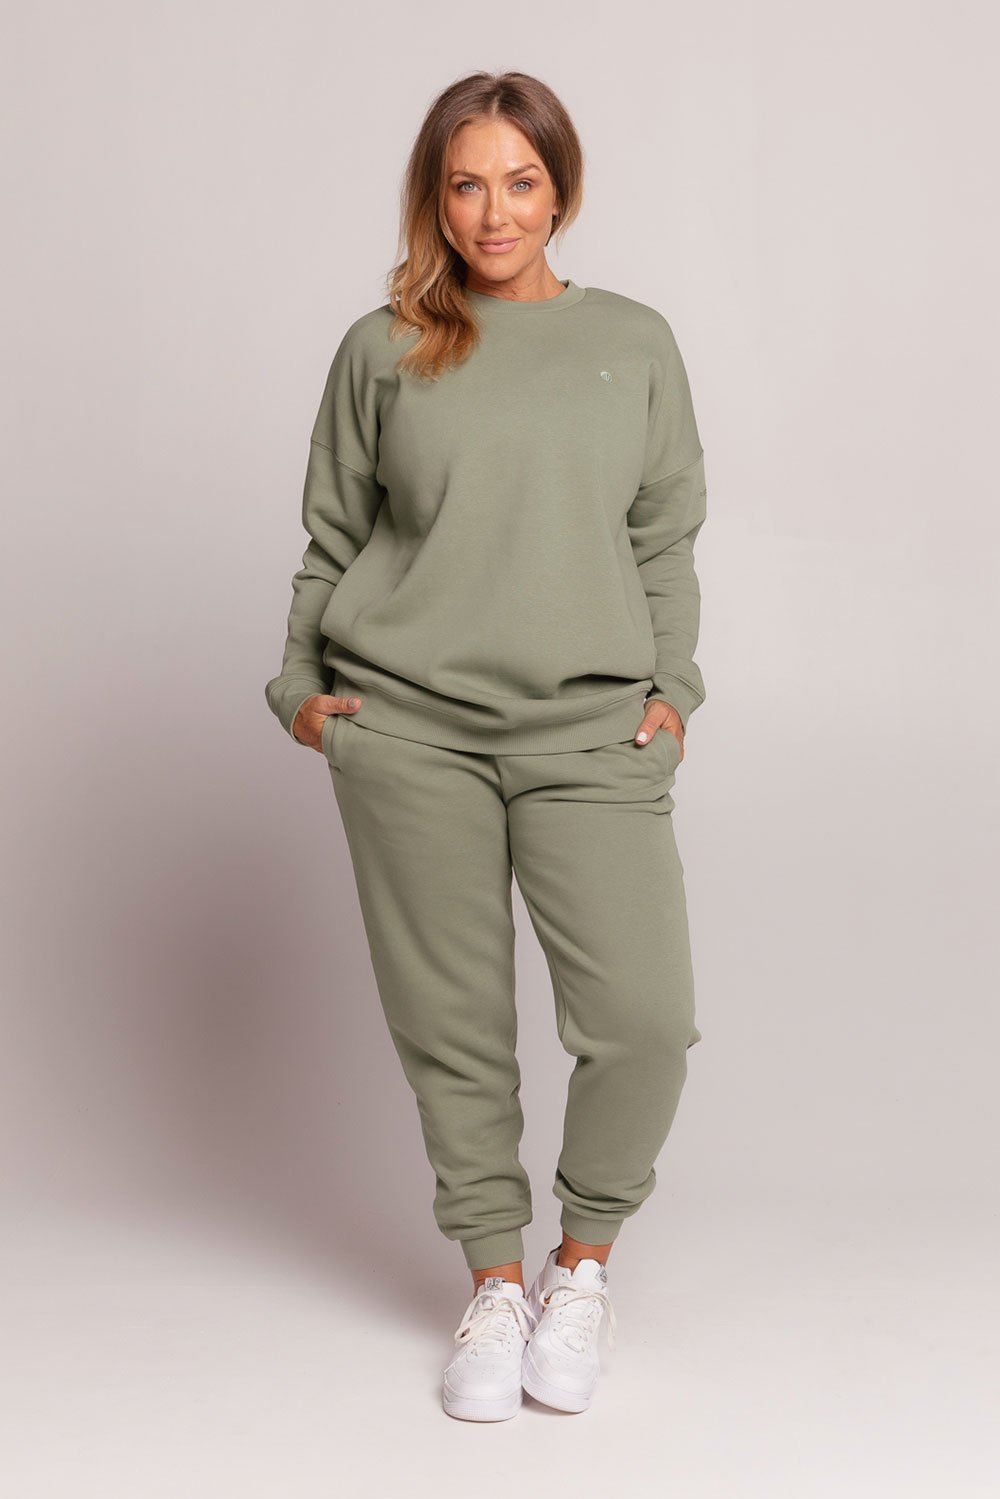 oversized-sweatshirt-khaki-large-front